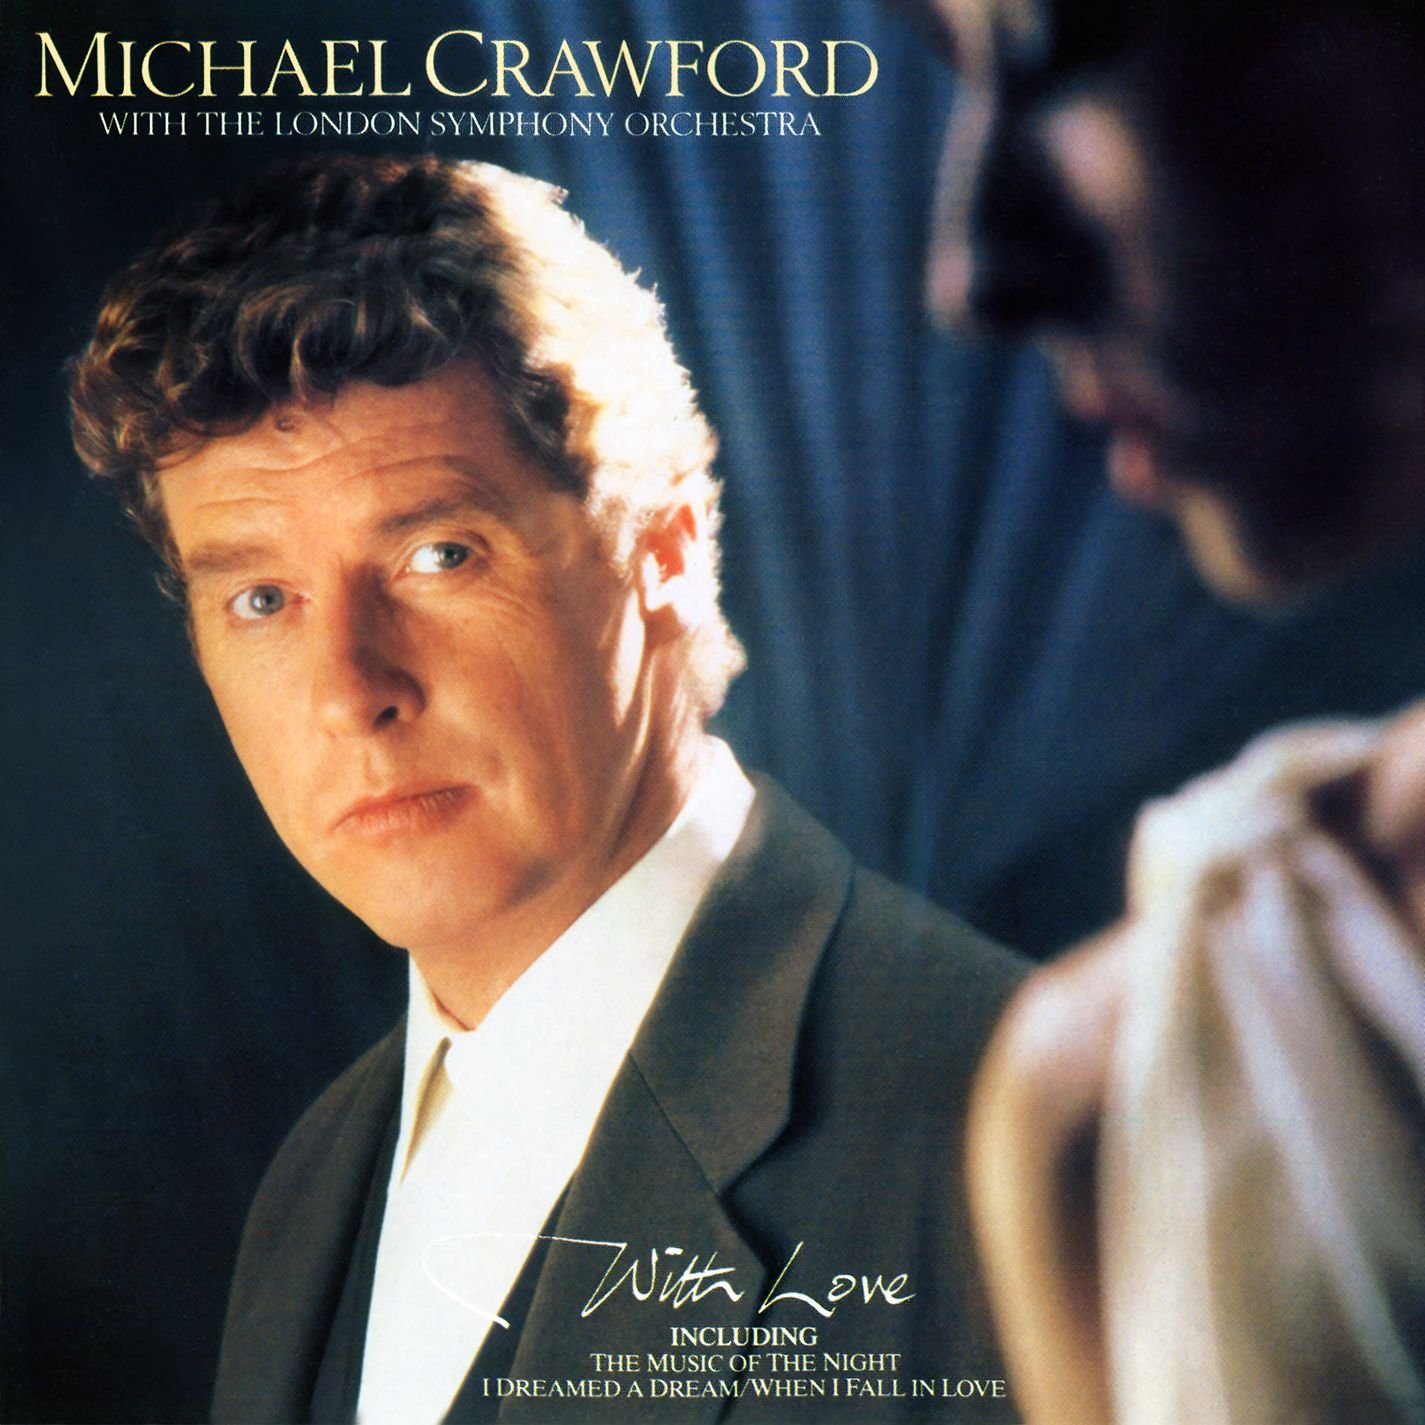 Michael Crawford With The London Symphony Orchestra – With Love (1989) [FLAC]